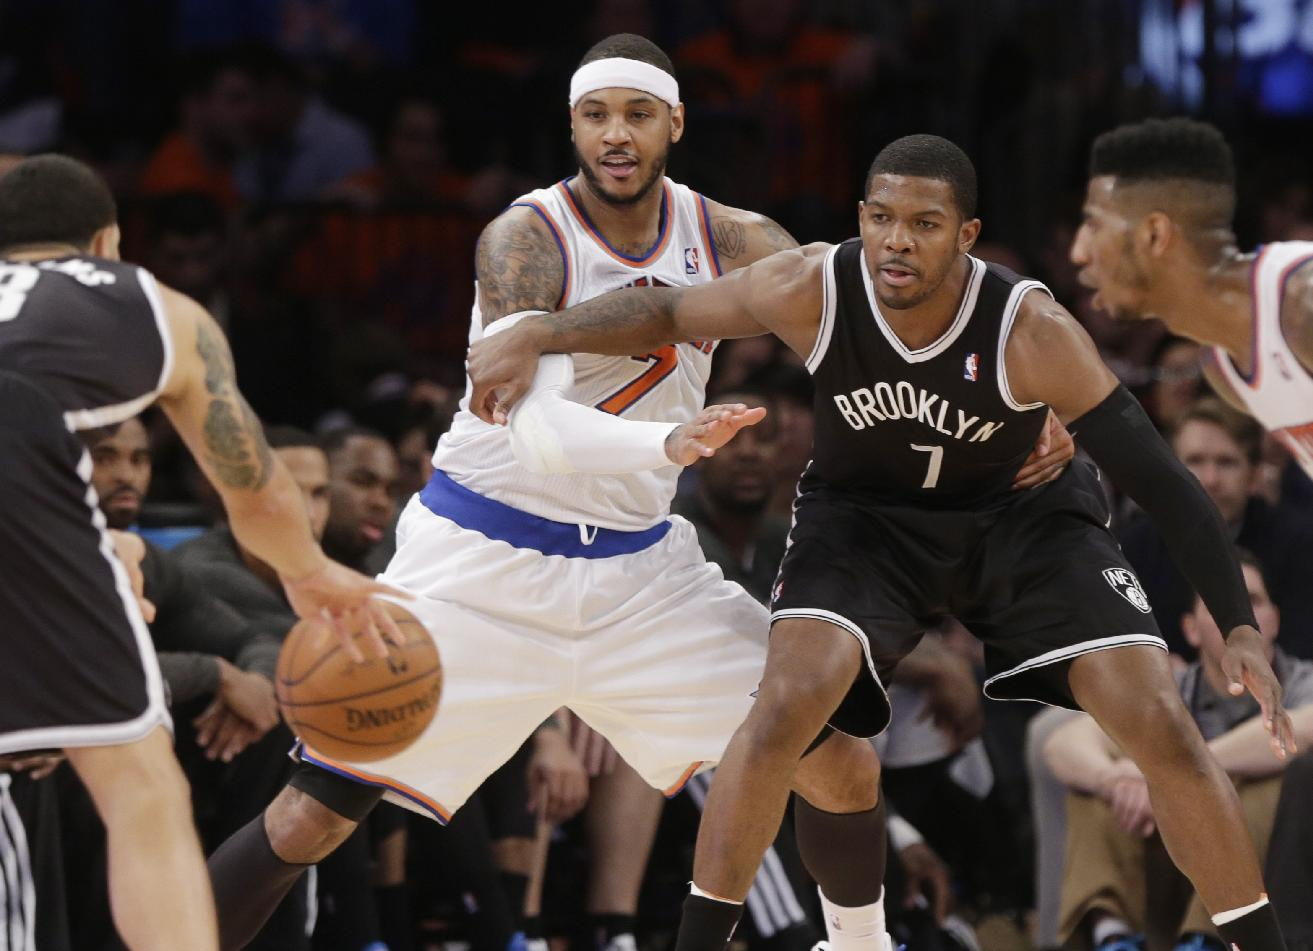 Tuesday night playoff table-setter: What's at stake in Nets-Kni…